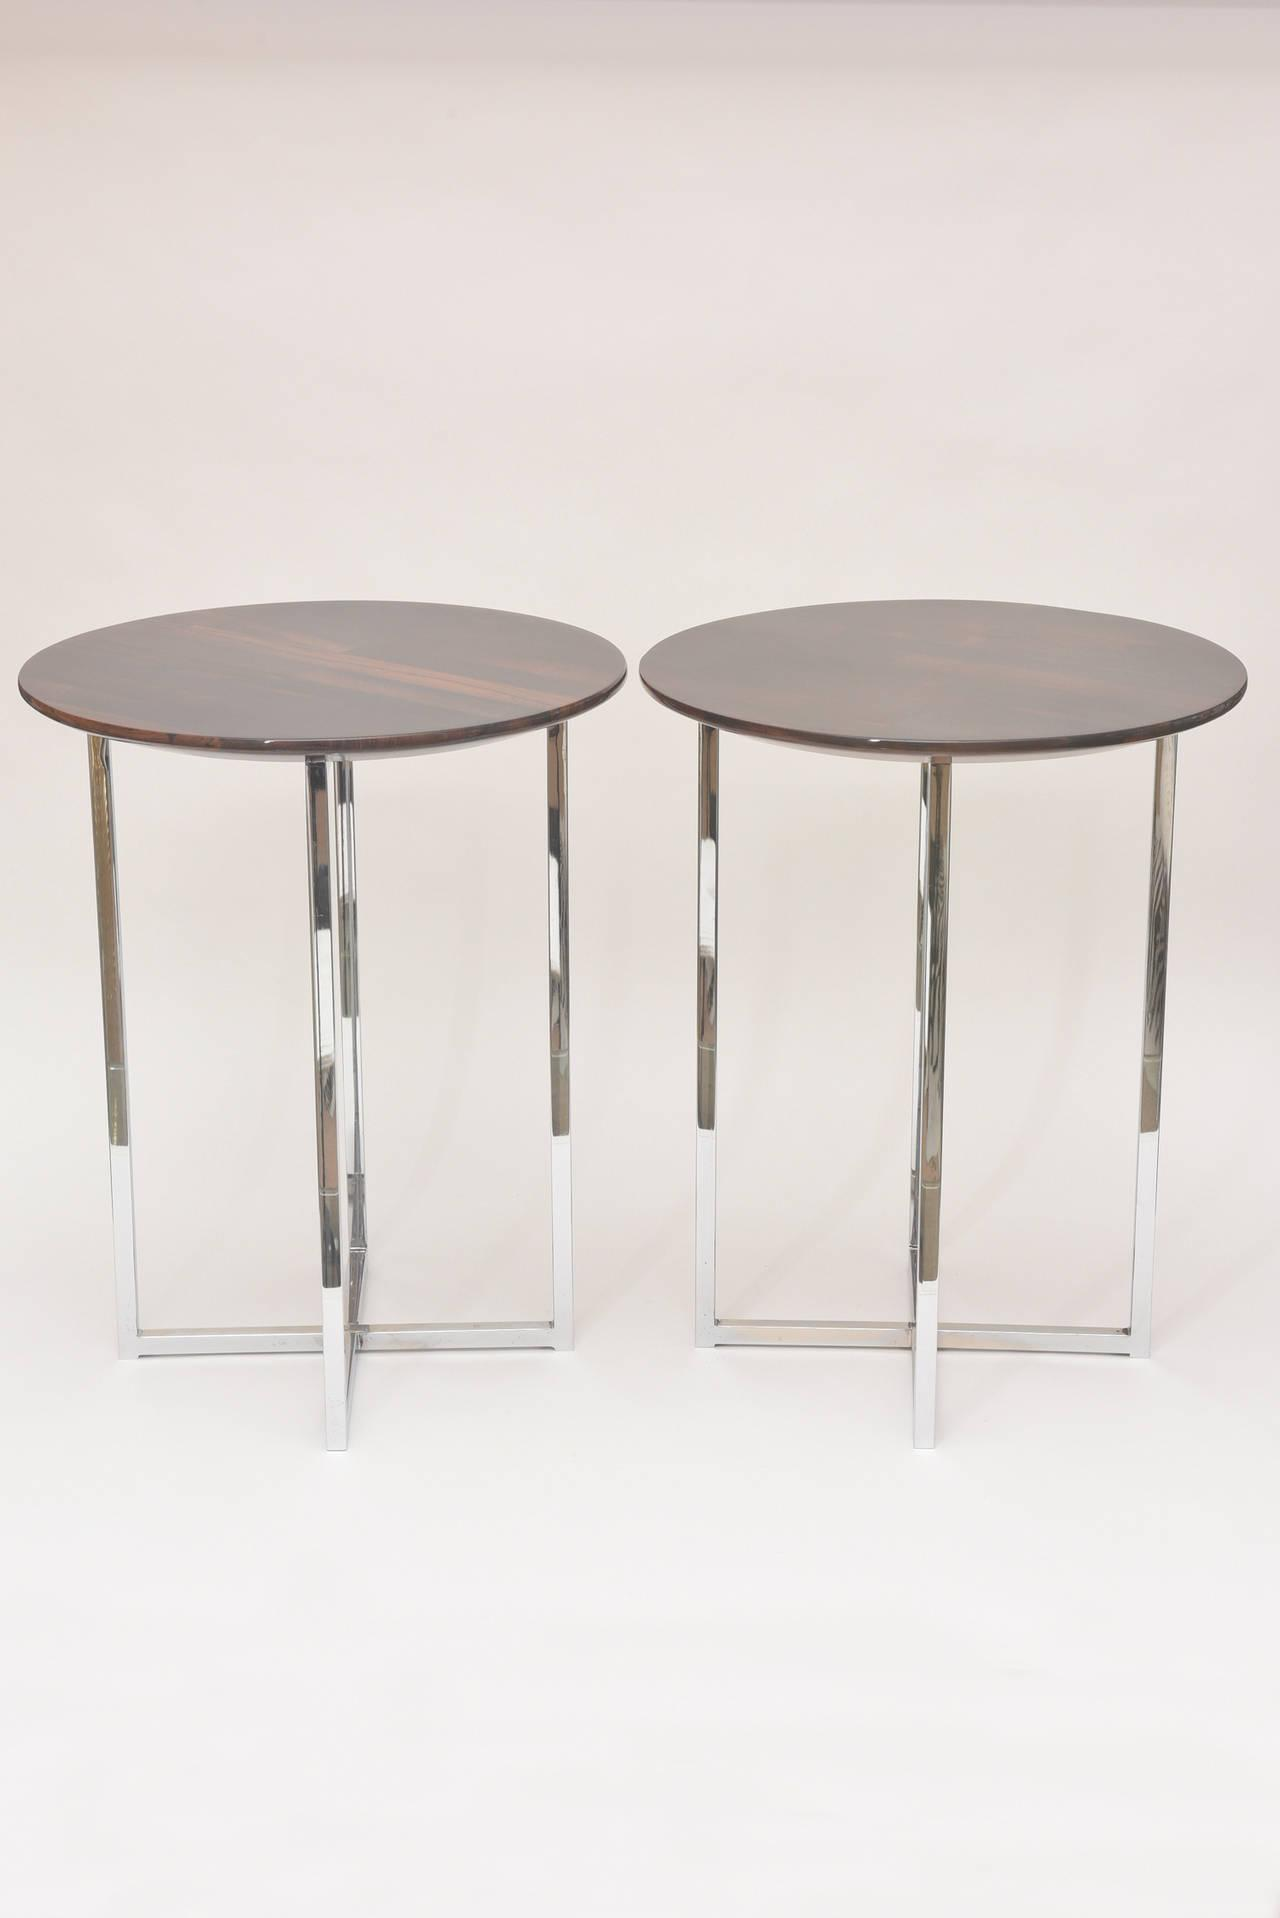 Pair Of Sculptural Milo Baughman Polished Chrome And Exotic Wood Side Tables    Image 4 Of